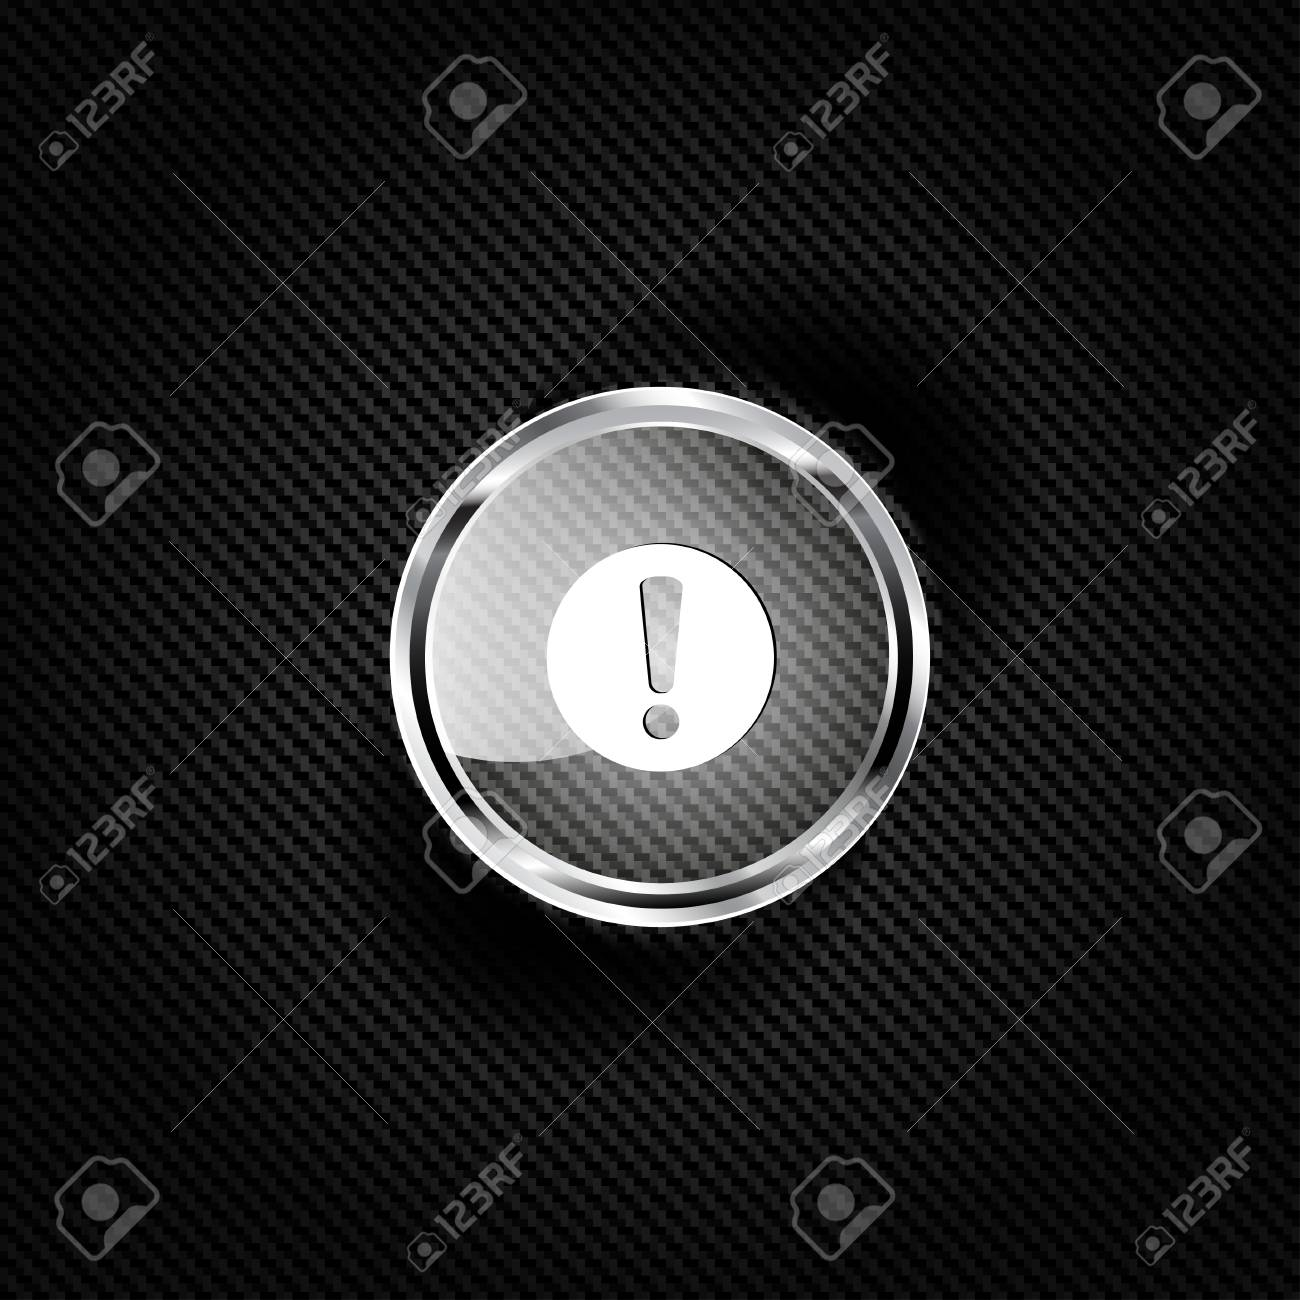 Exclamation danger web icon Stock Vector - 23009657